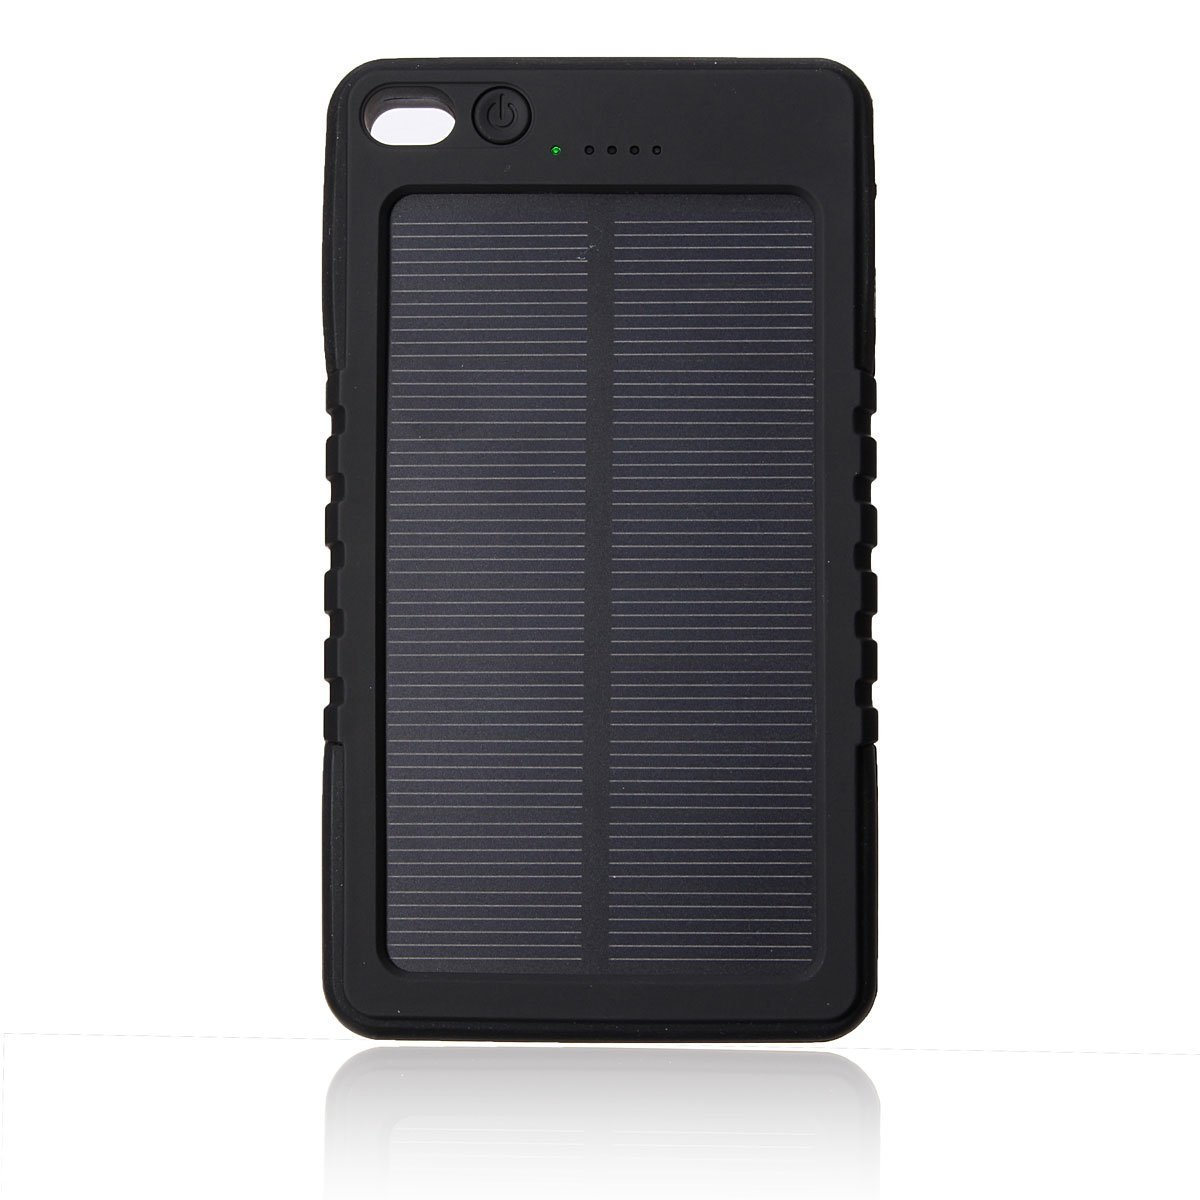 Faddist Solar Panel Charger 8000mah Rain-resistant Dirt/shockproof Dual USB Port Portable Charger Fits Most Usb-charged Devices (Black)